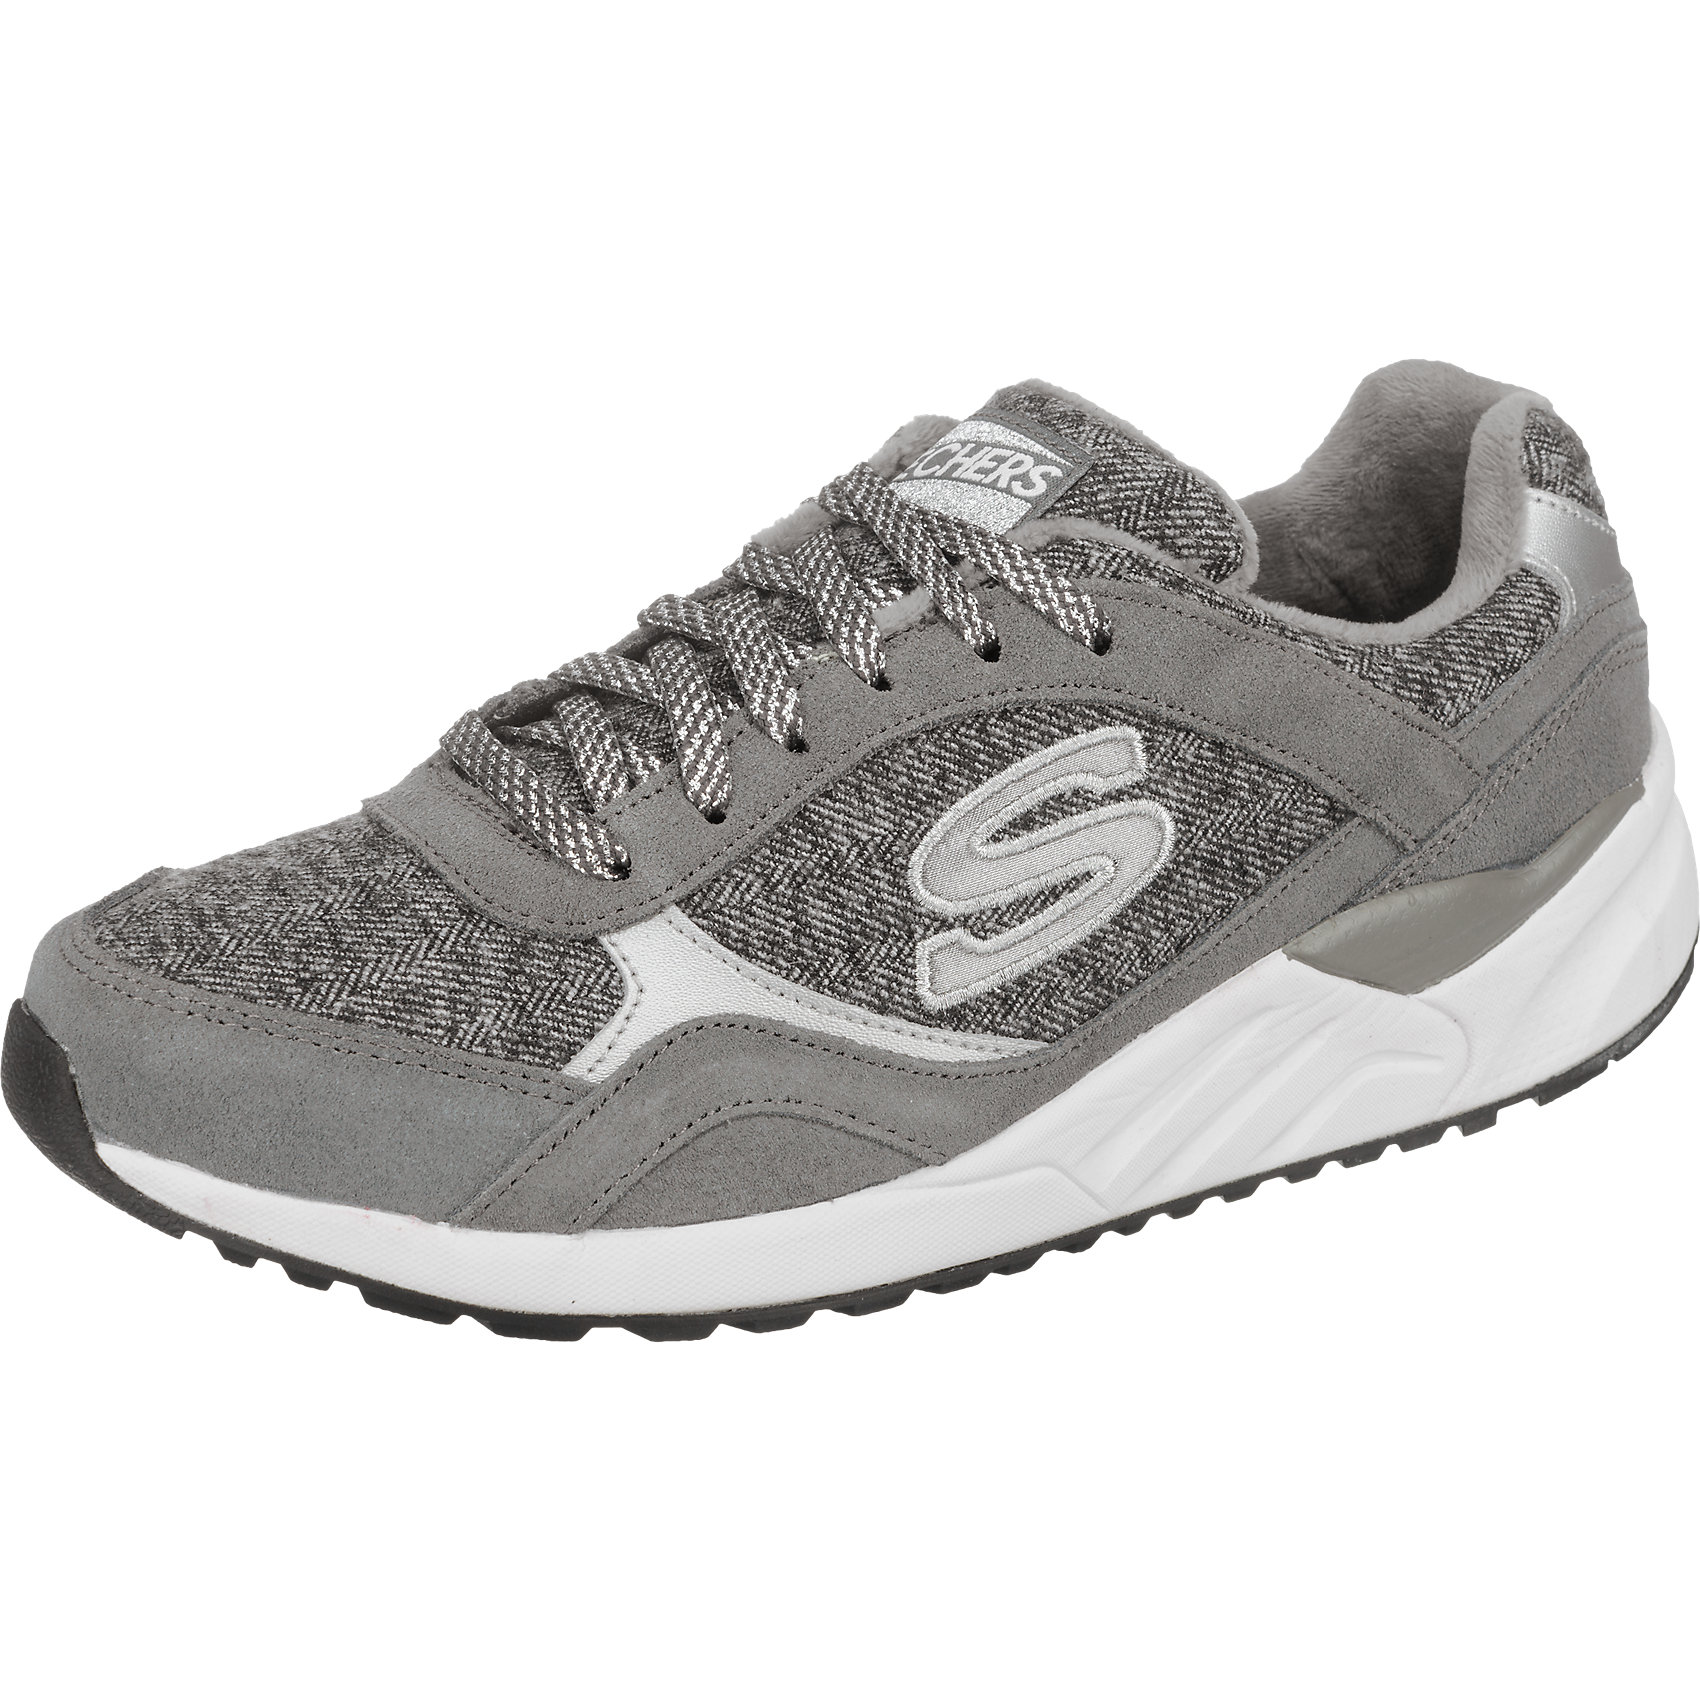 Skechers Damen Sneakers OG 95 Winter Walk Grau